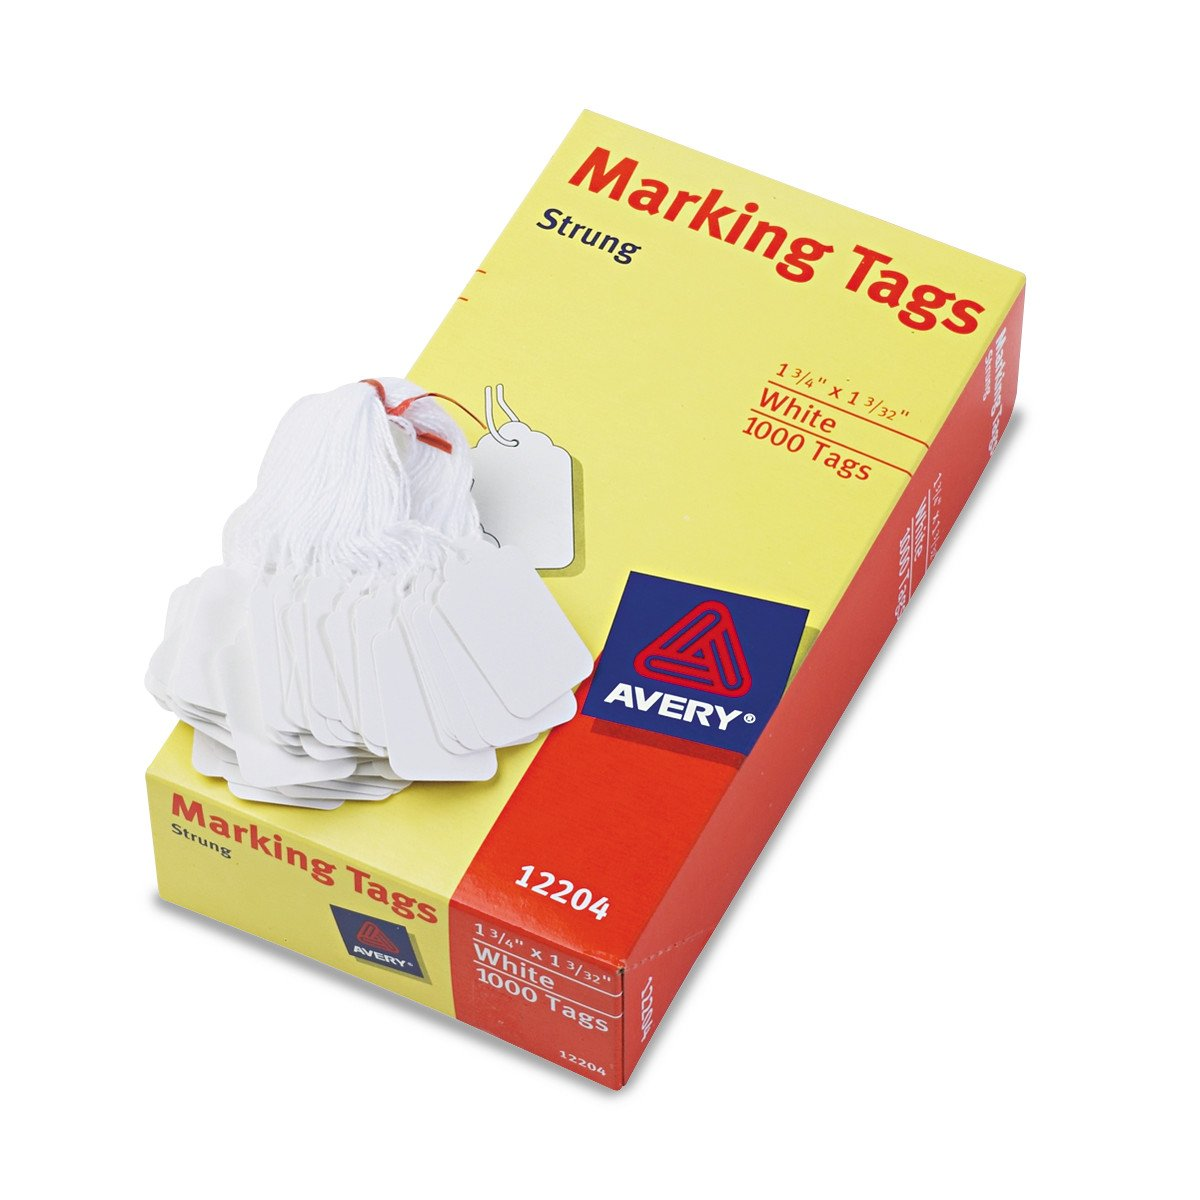 Avery 12204 Medium-Weight White Marking Tags, 1 3/4 x 1 3/32 (Box of 1000) by Avery (Image #2)